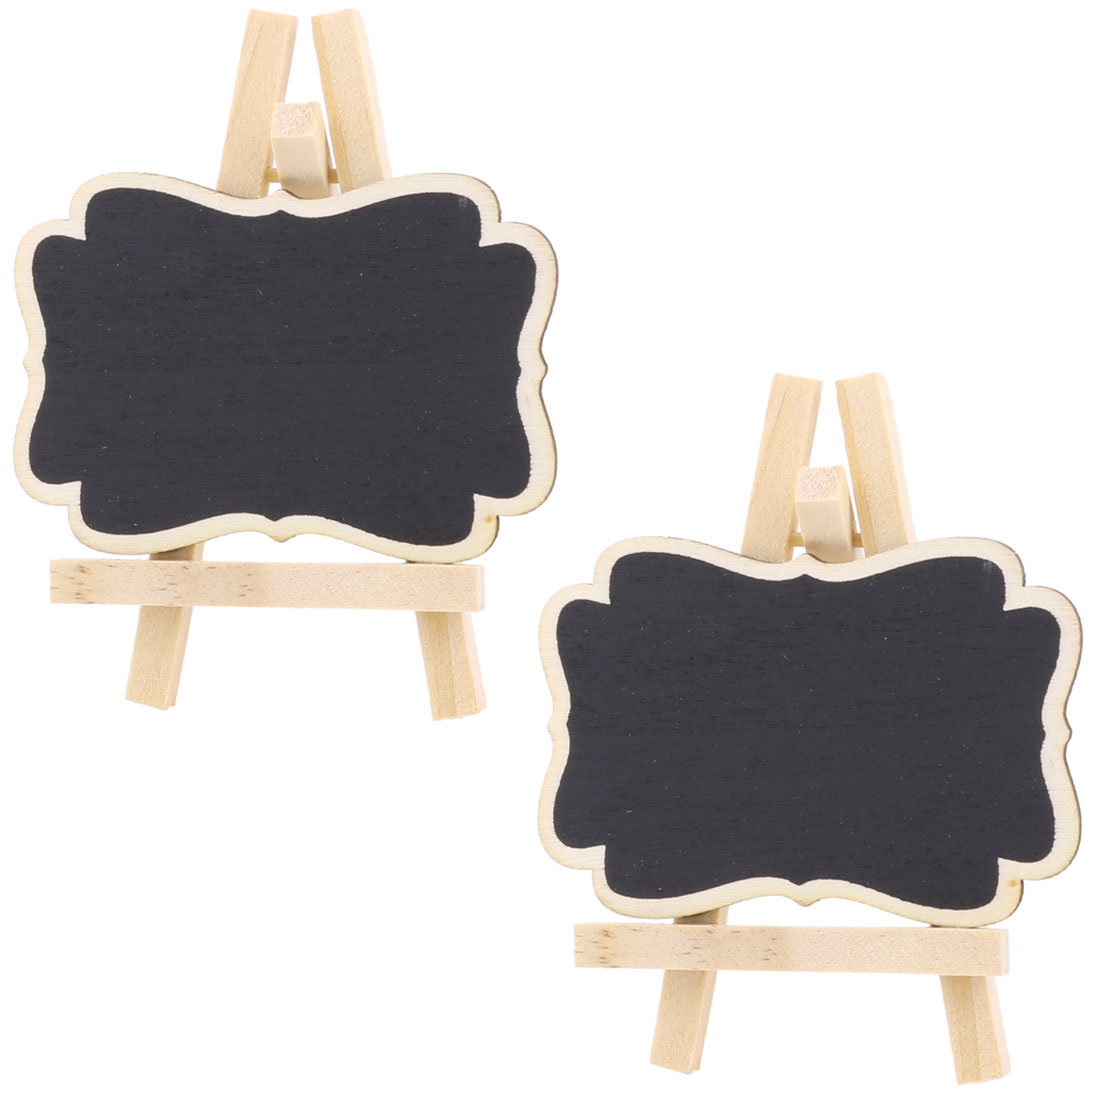 Wedding Wood Table Desktop Ornament Place Card Blackboard Chalkboard Black 2 Pcs